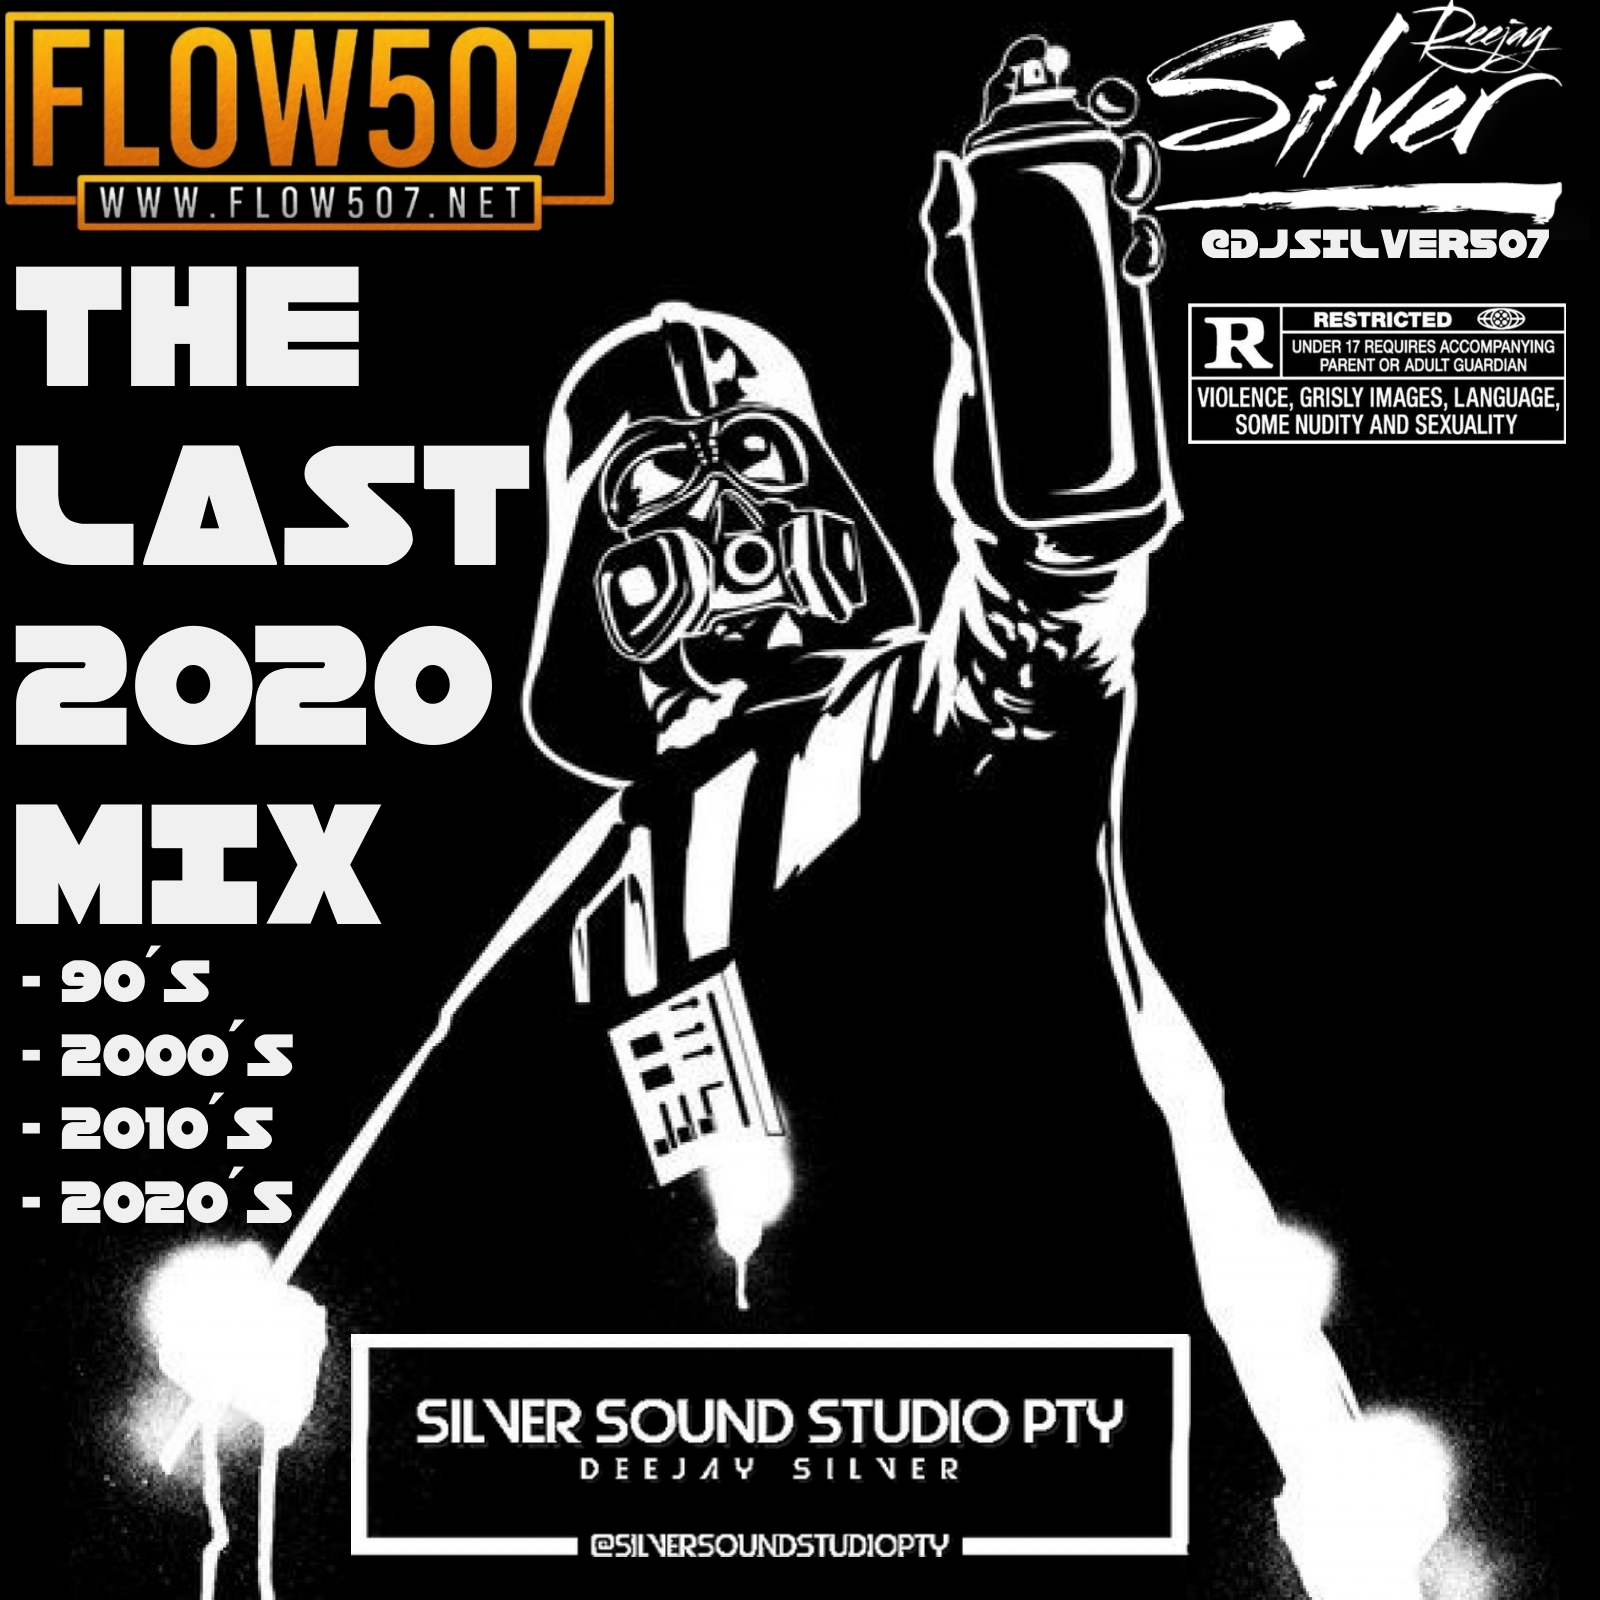 DEEJAY SILVER - THE LAST 2020 MIX